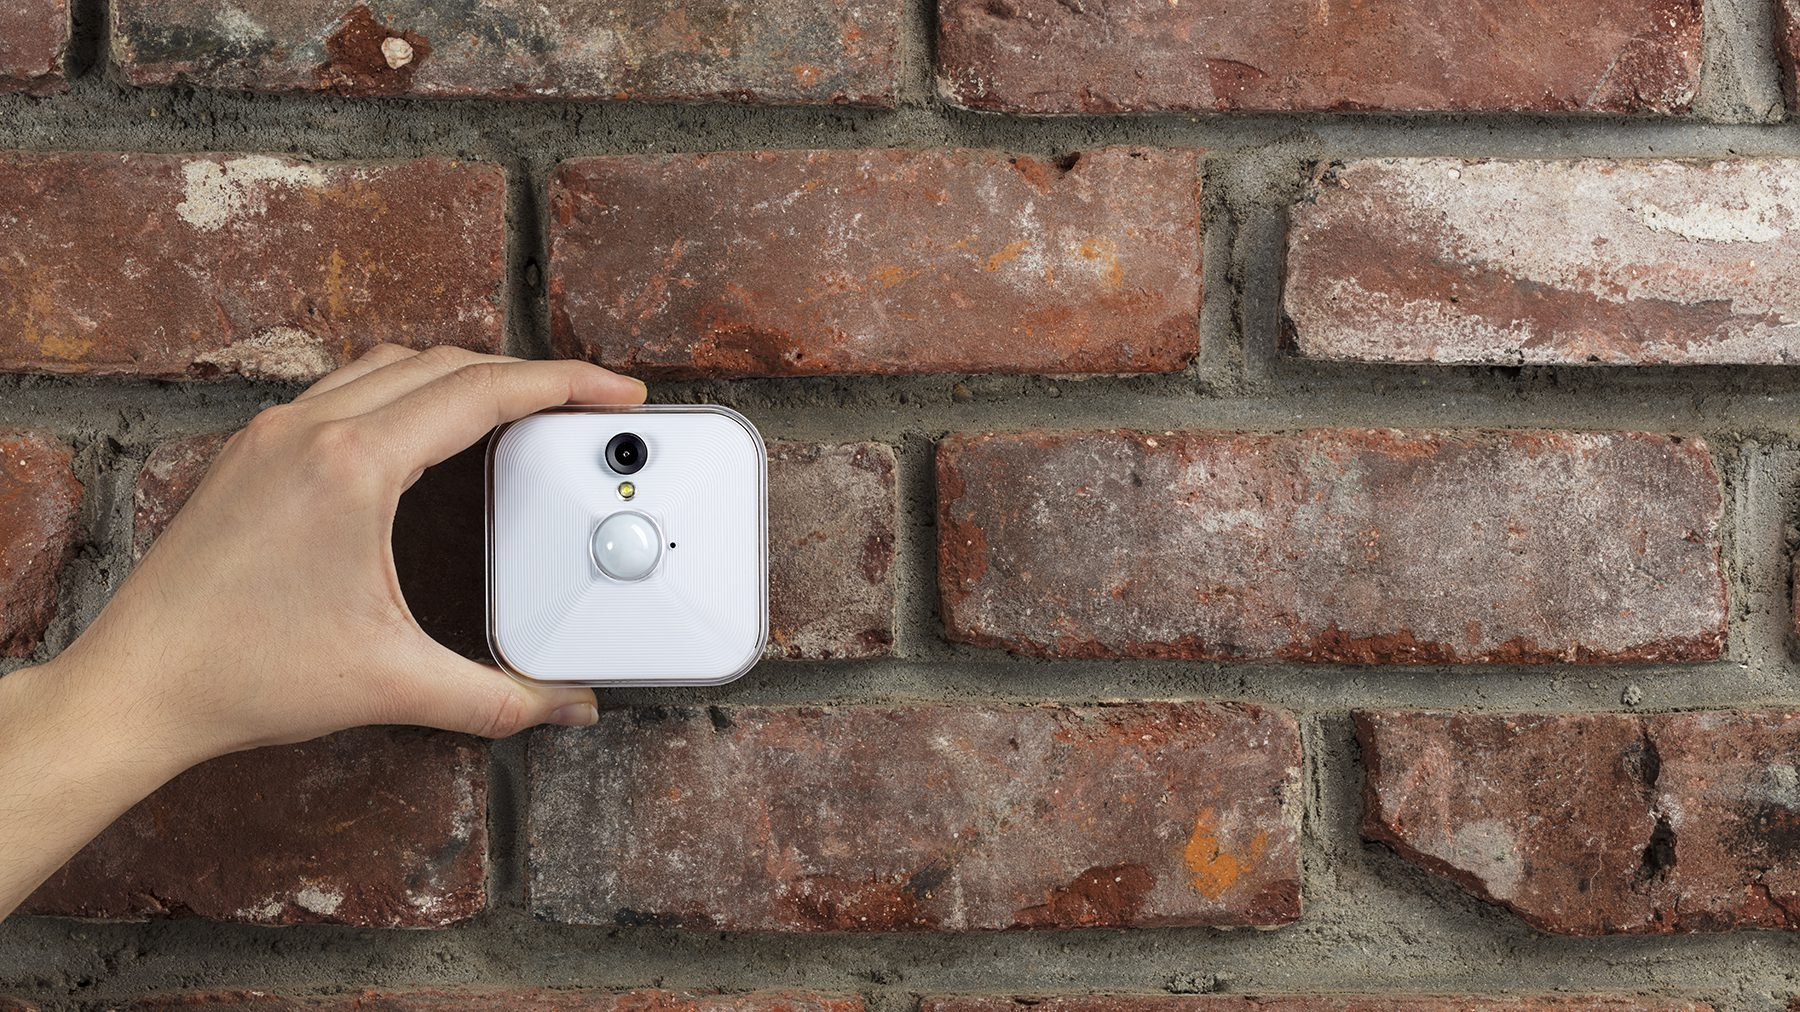 A Blink security camera, now owned by Amazon.